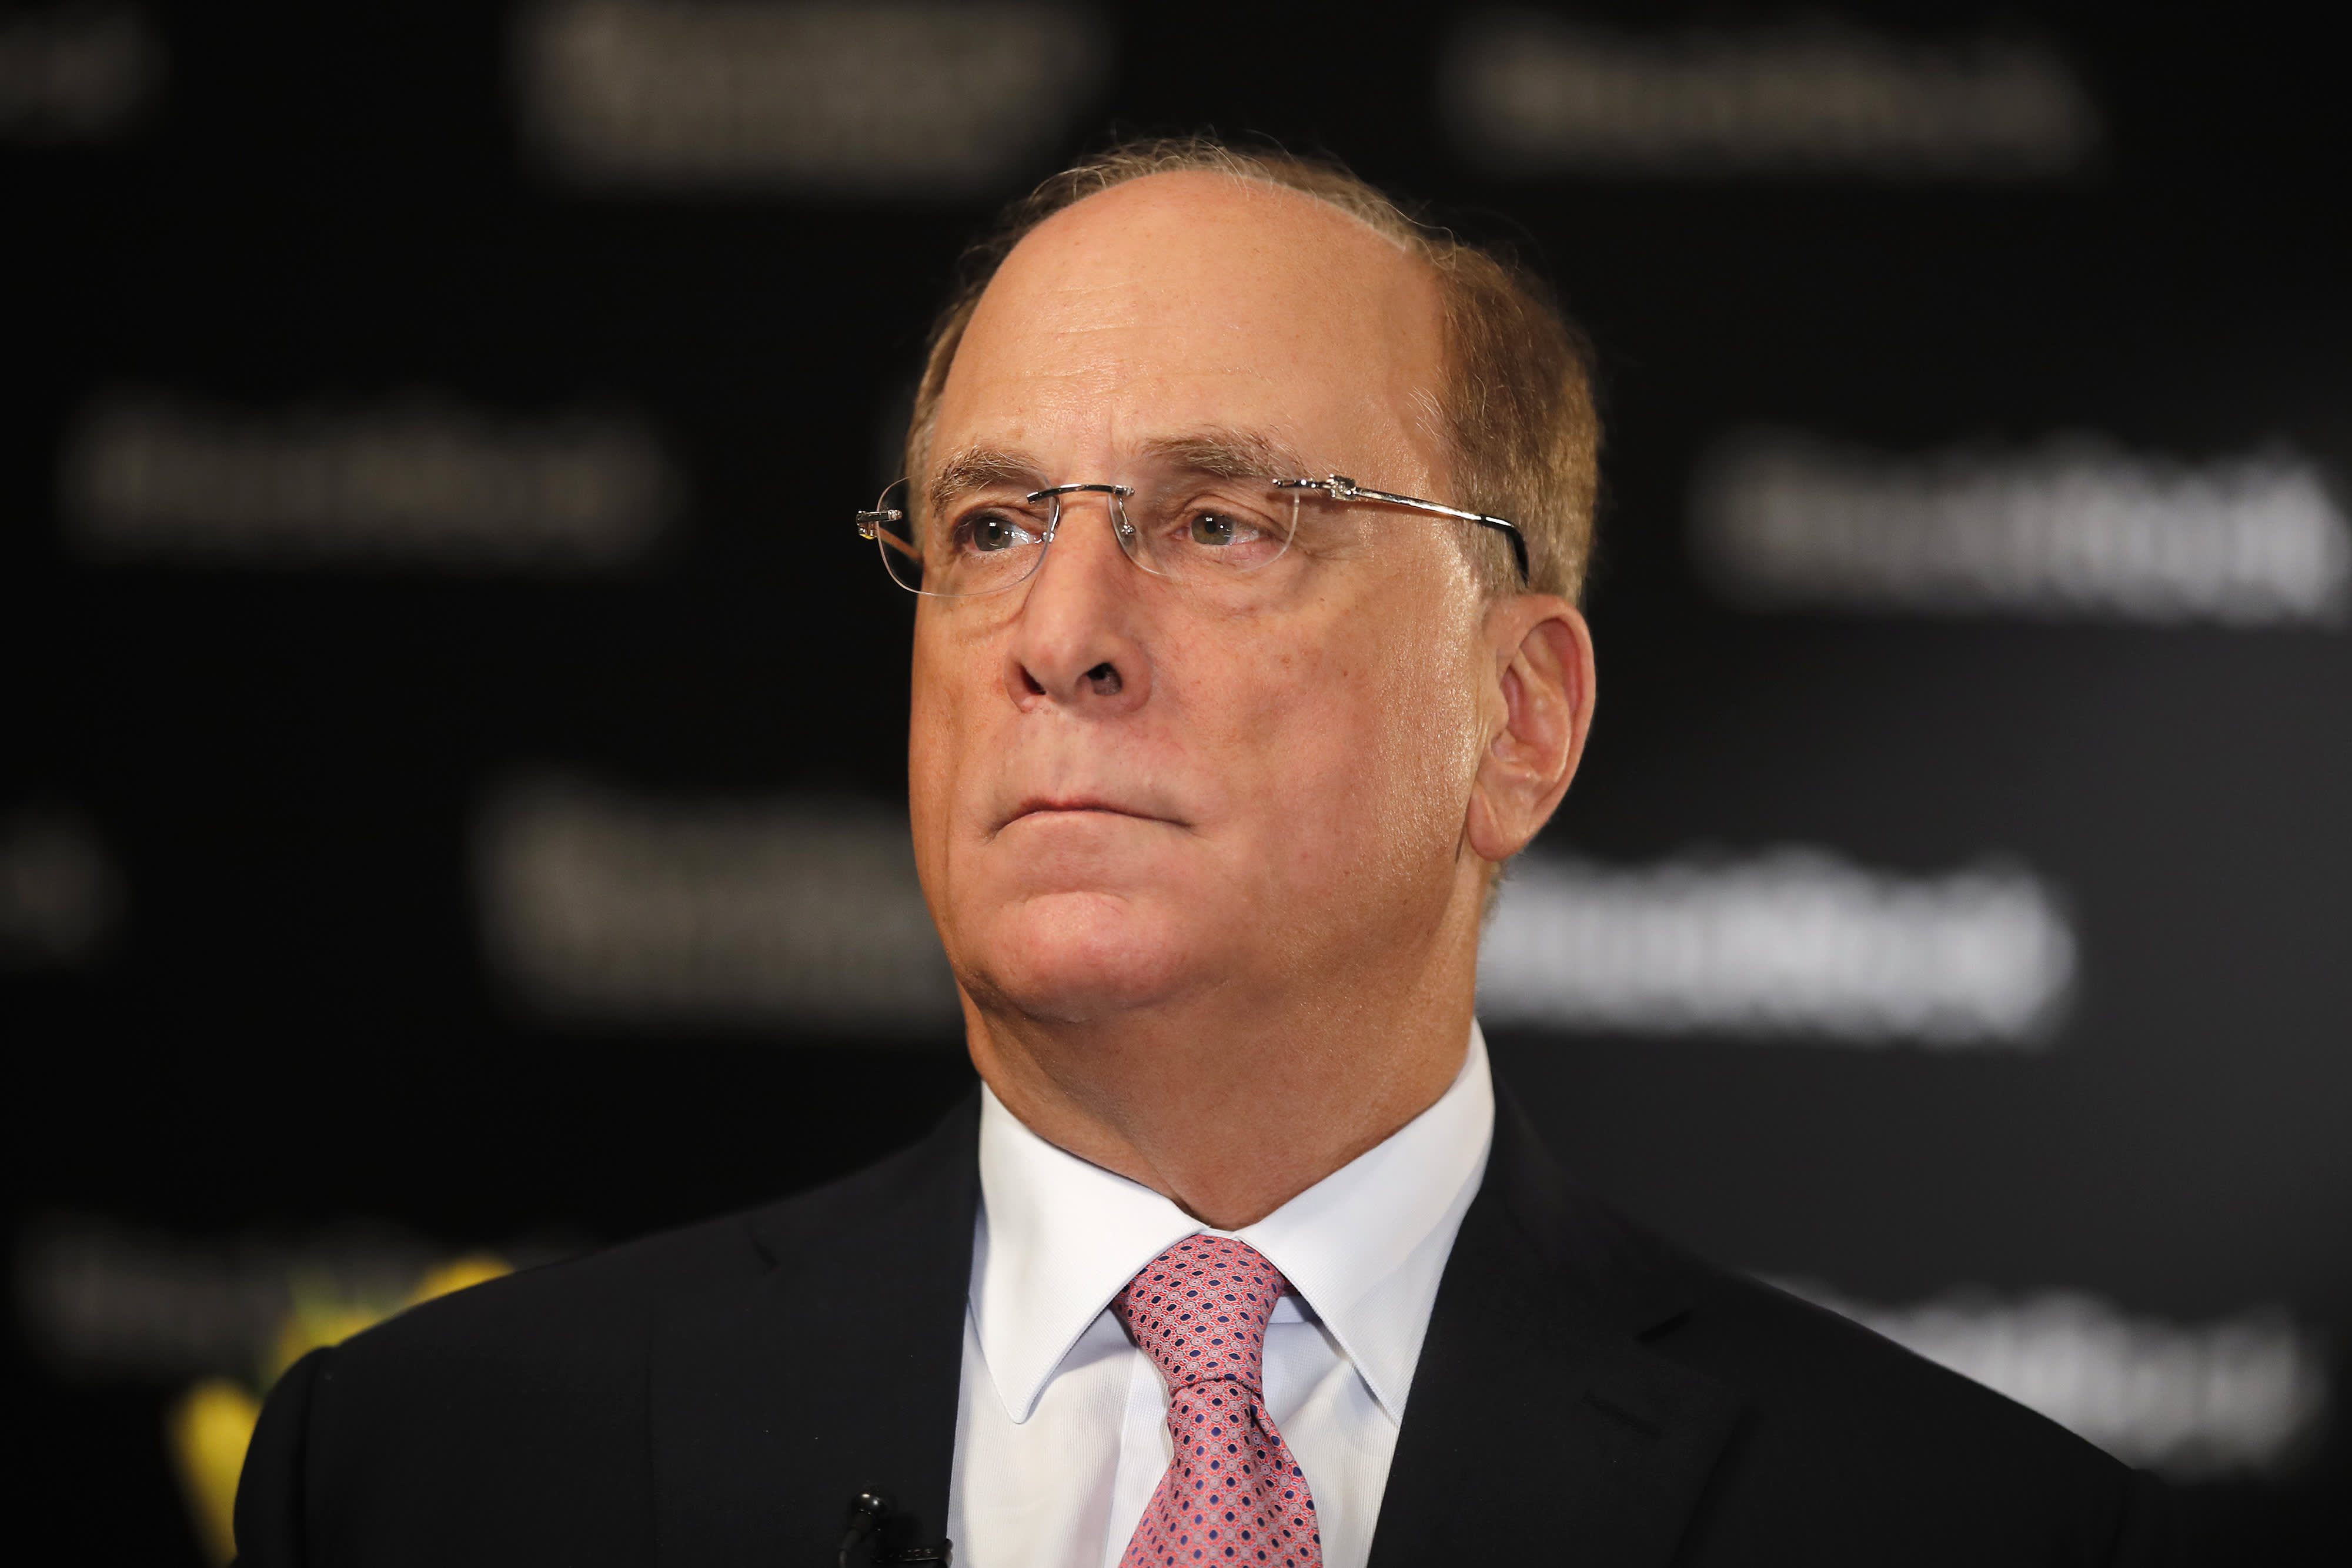 BlackRock CEO says the climate crisis is about to trigger 'a fundamental reshaping of finance'